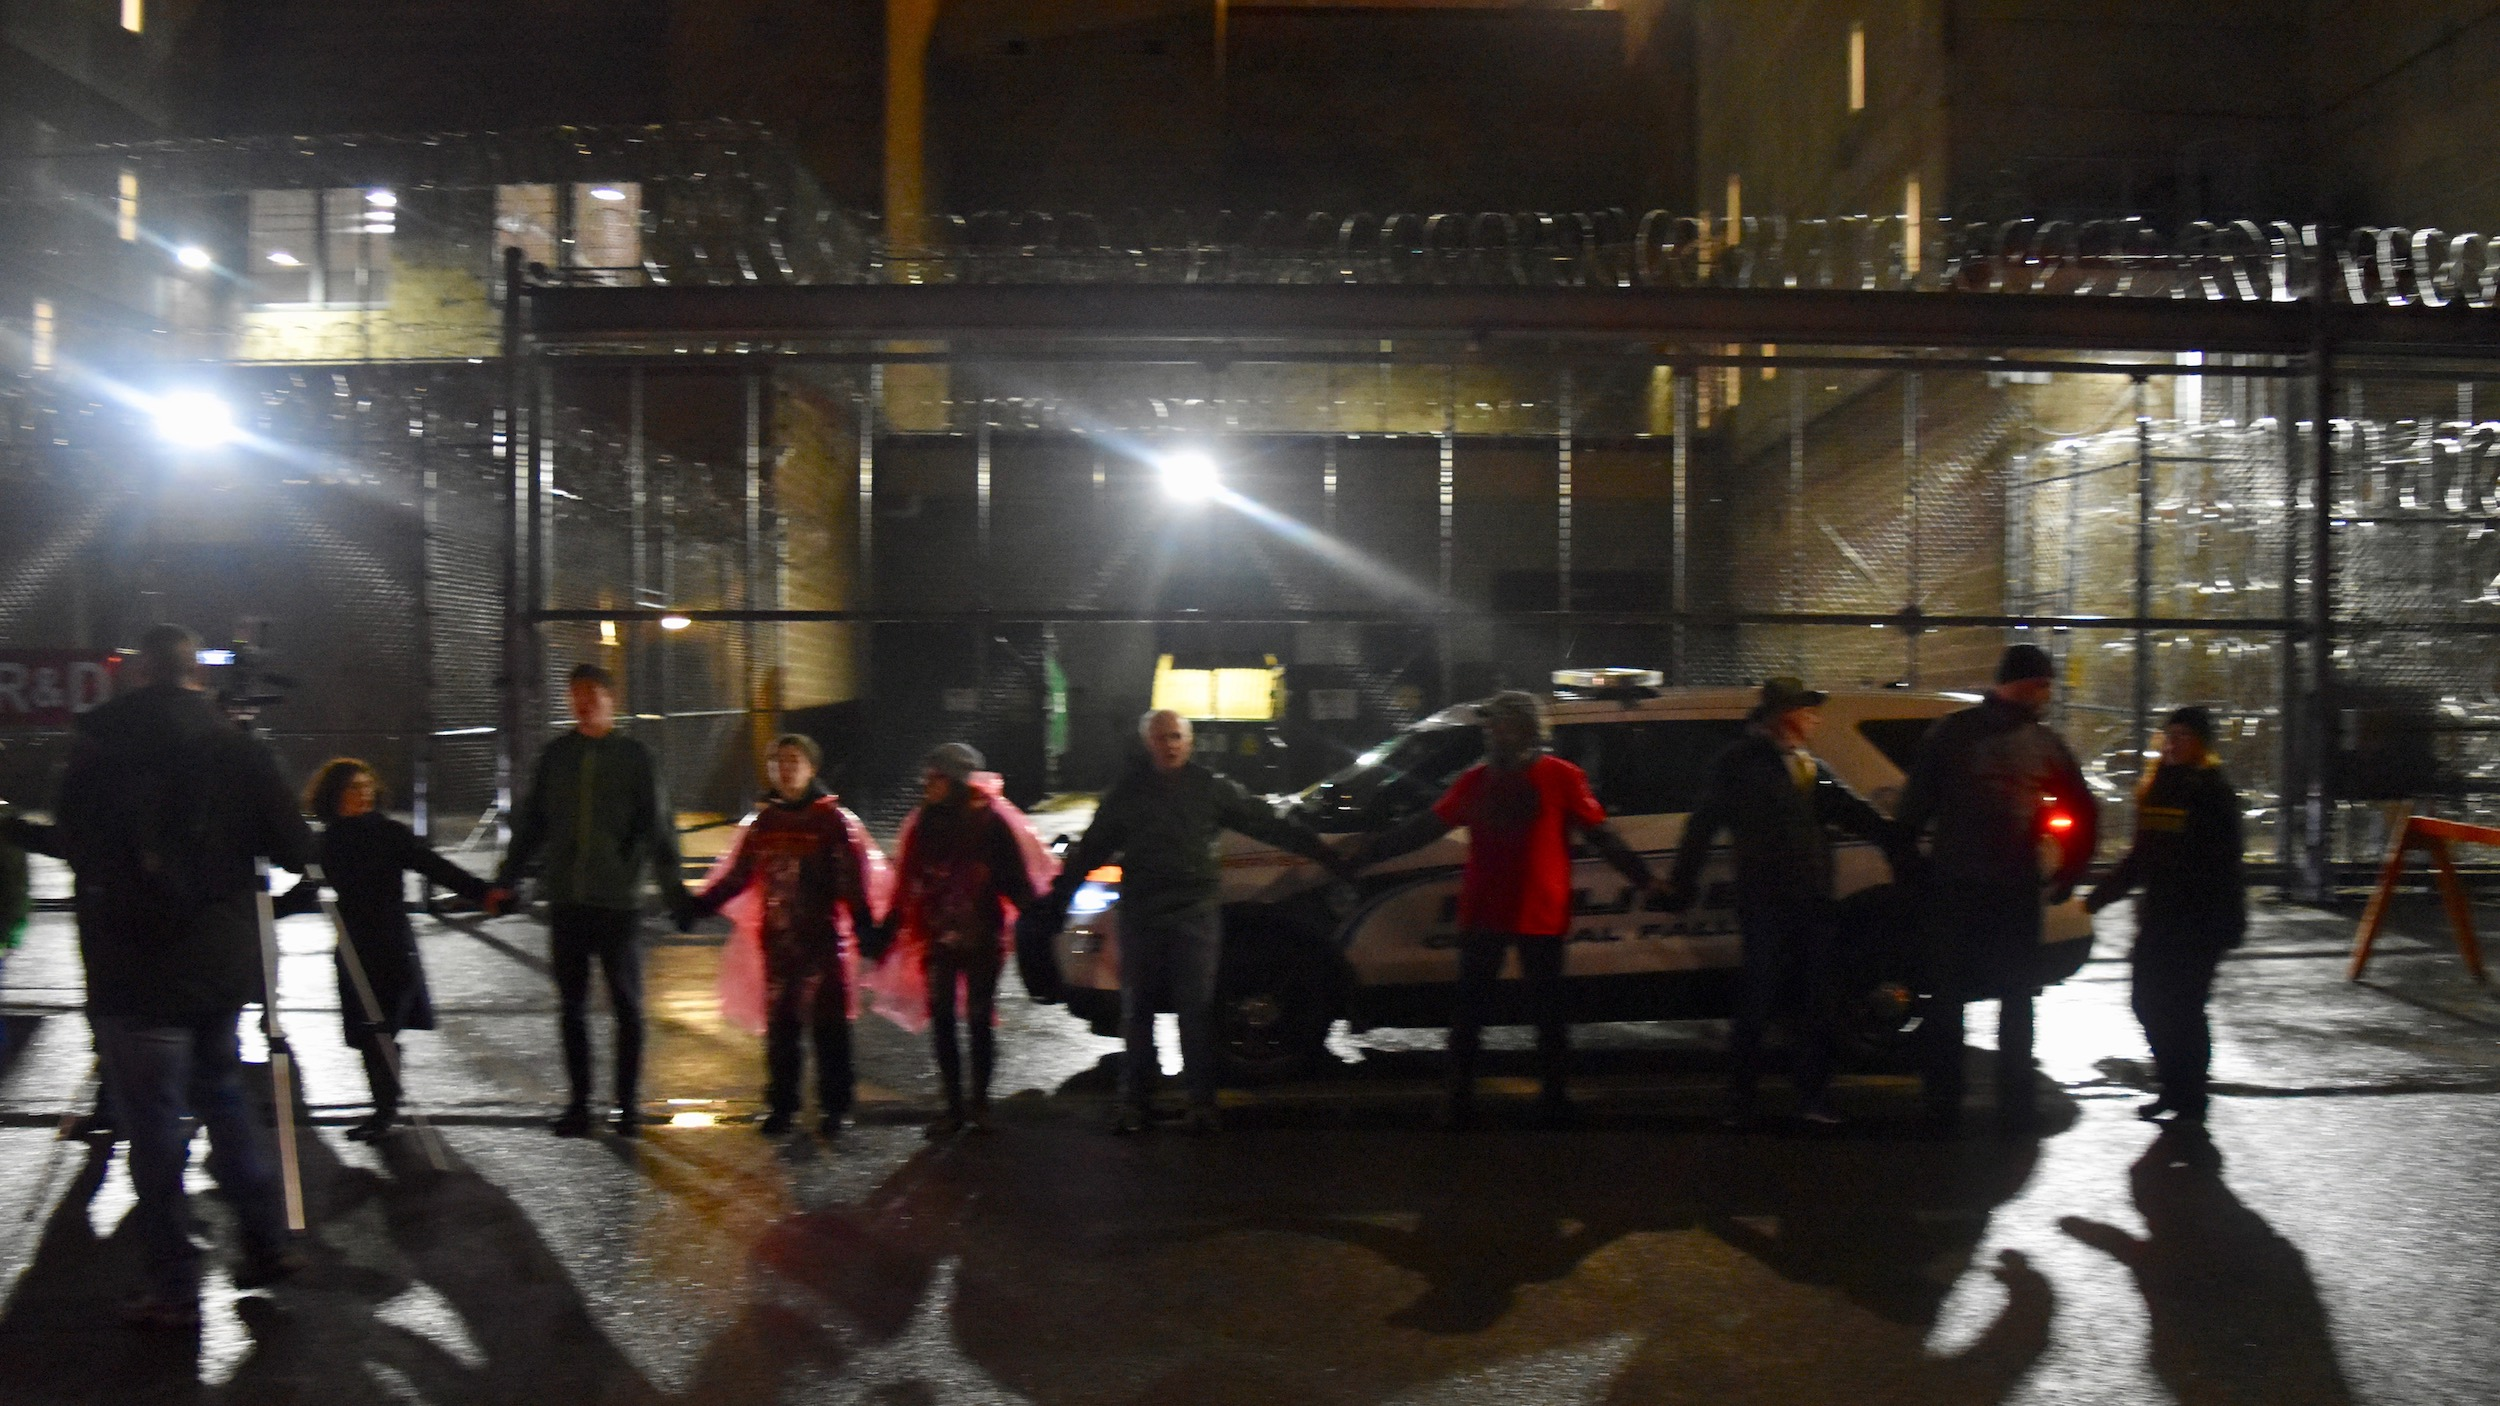 Photo for ACLU class-action lawsuit seeks release for all ICE detainees at Wyatt Detention Center